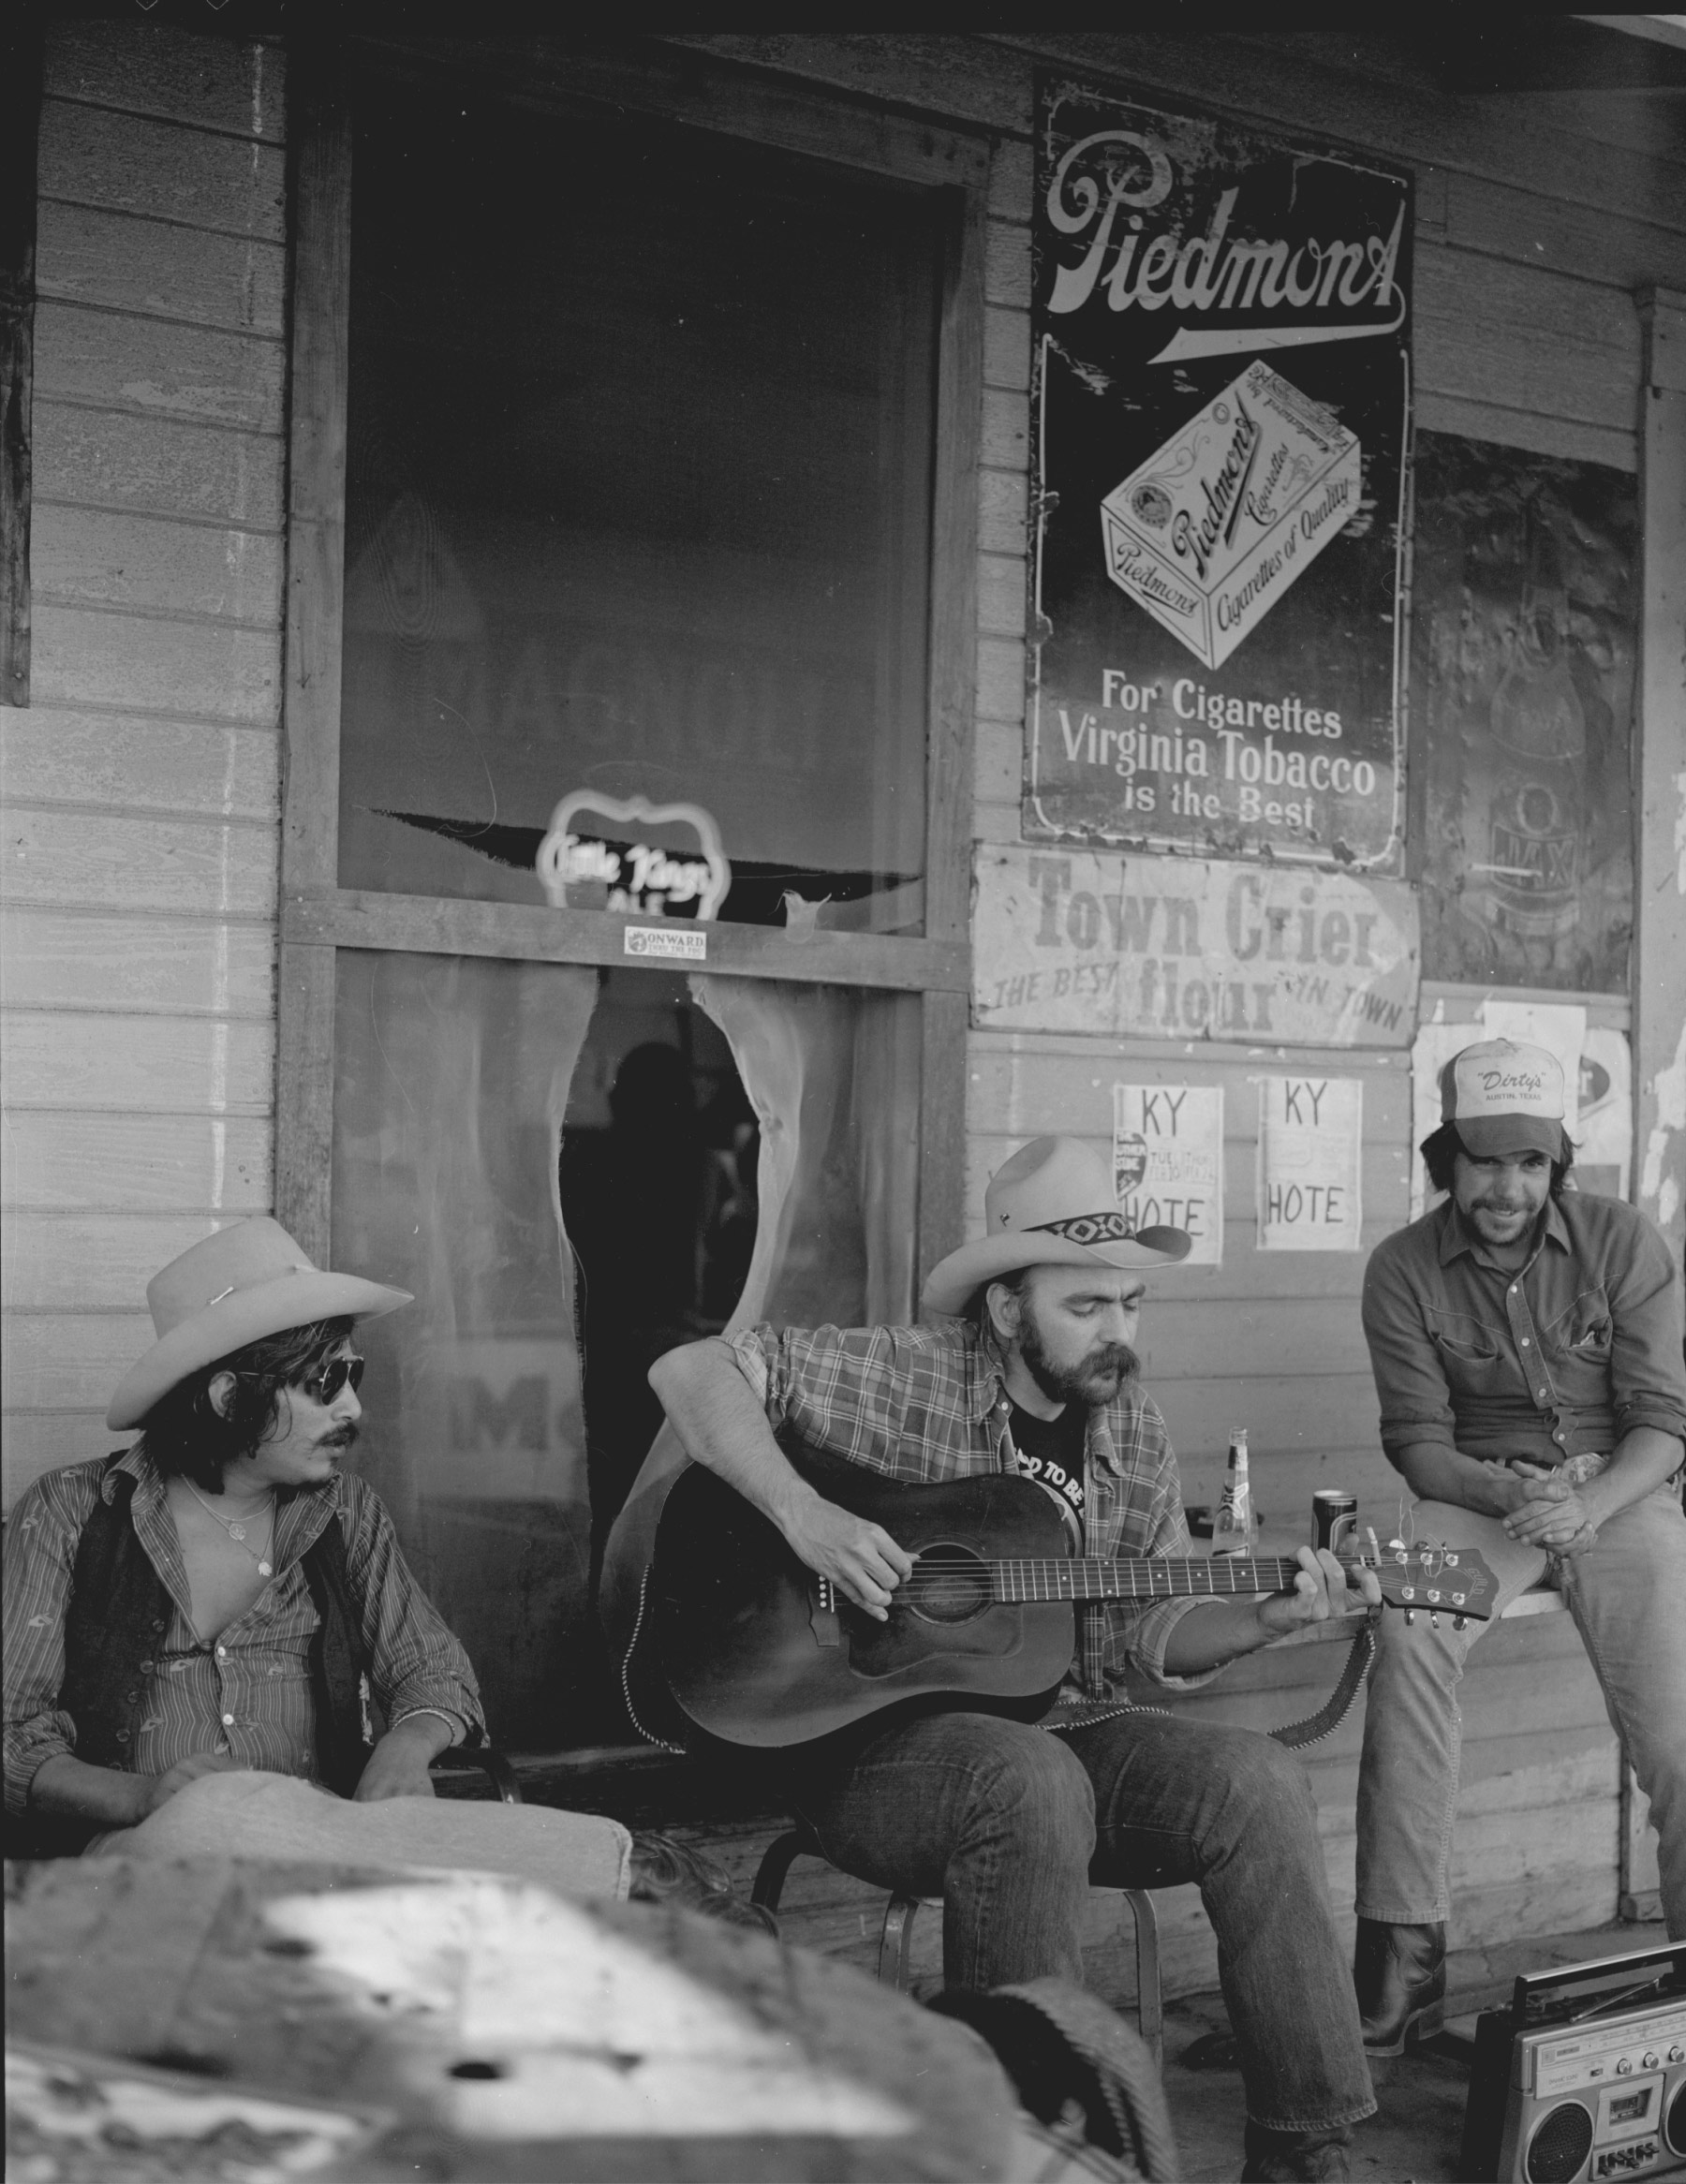 Blaze sitting on porch of a saloon, playing guitar for people